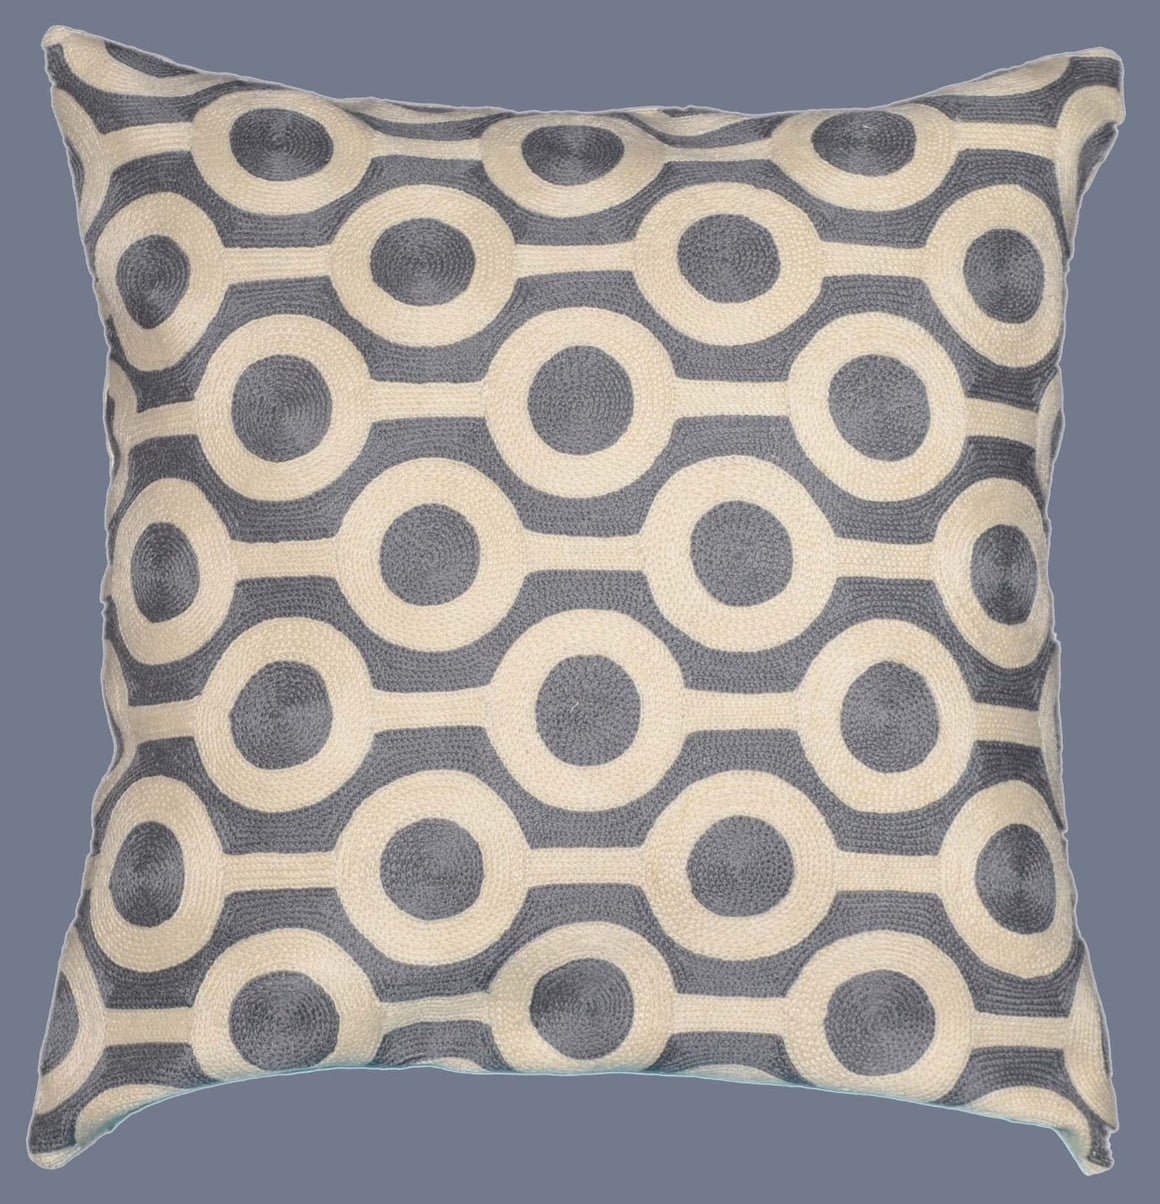 Crewel Chain Stitch Pillow Cushion Cover, Grey and White #CW-1102